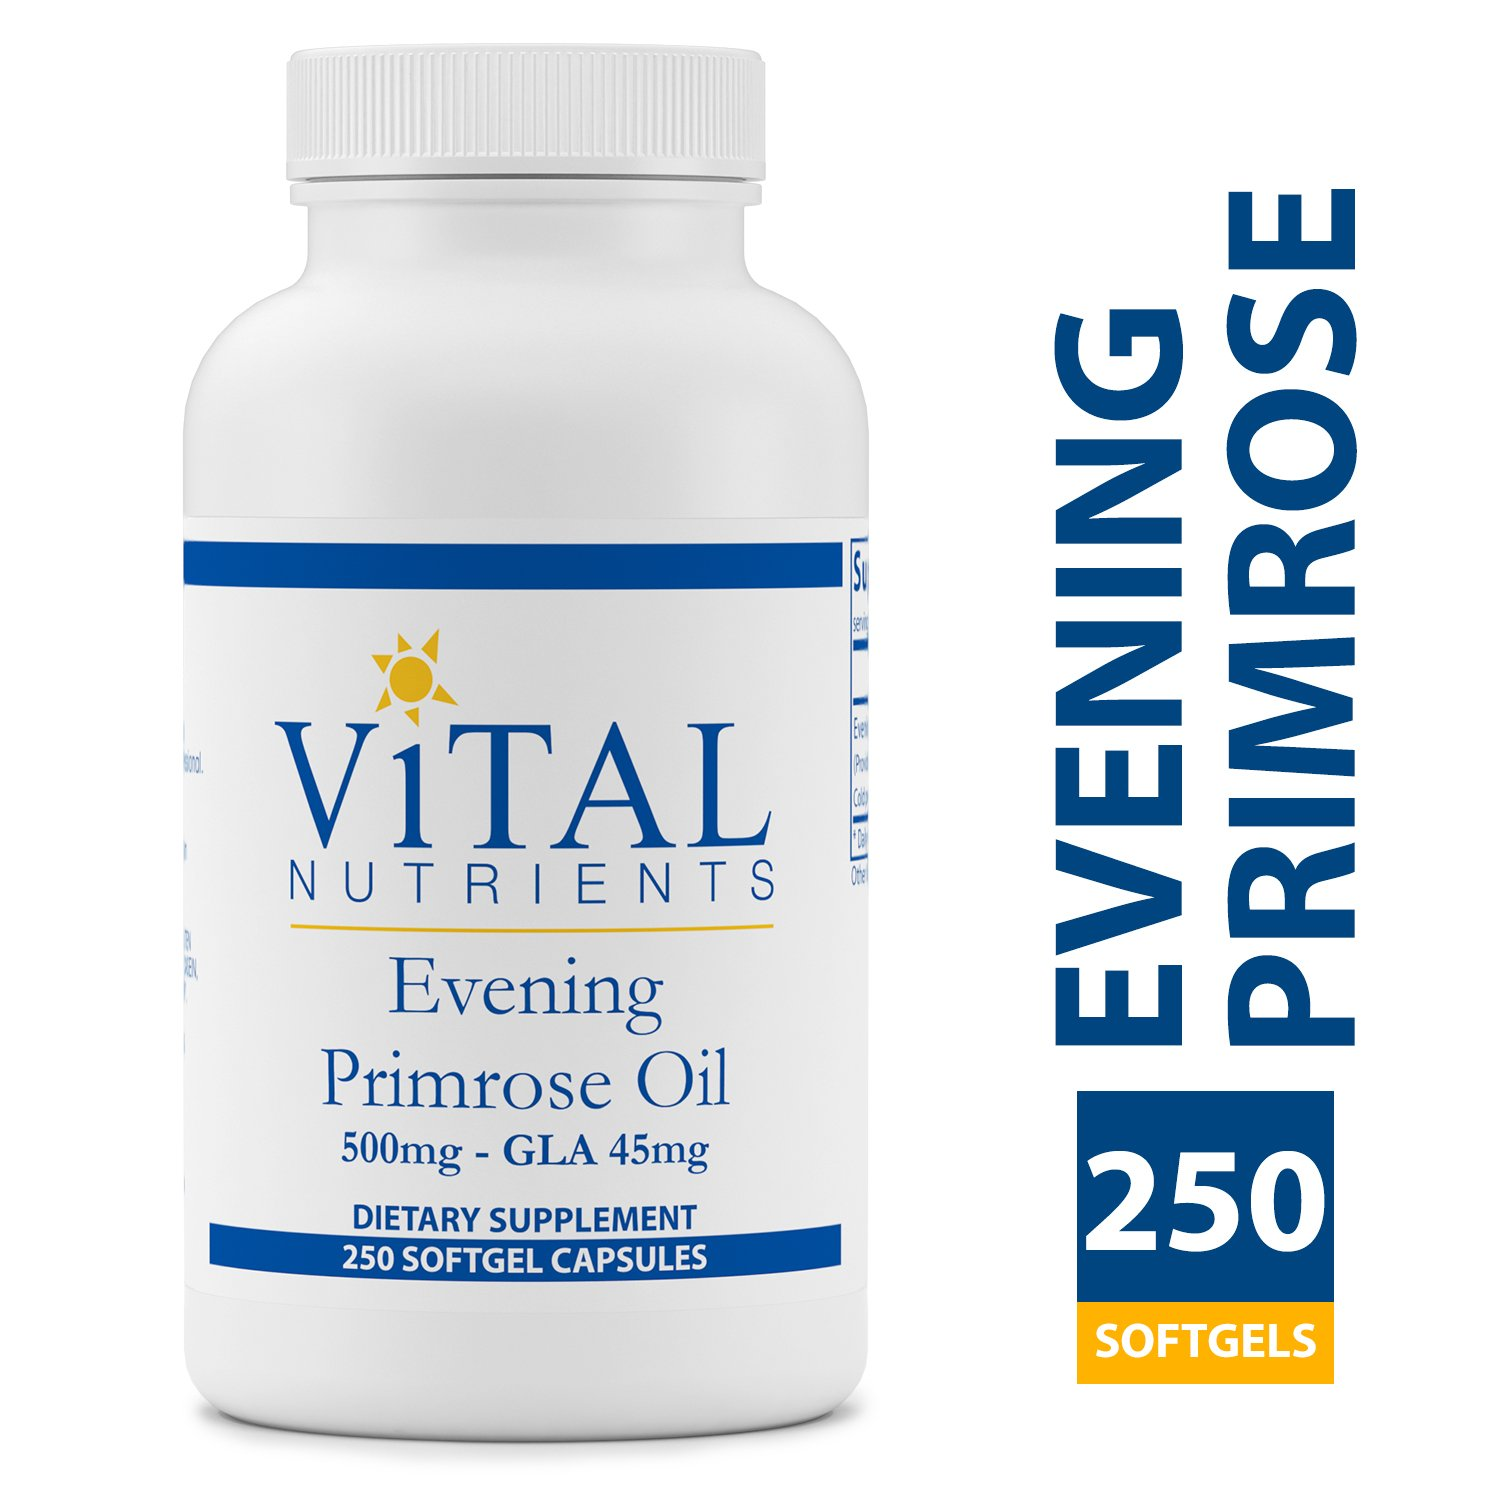 Vital Nutrients - Evening Primrose Oil 500 mg - Cold-Pressed Oil That Contains GLA, an Essential Omega-6 Fatty Acid - 250 Softgels